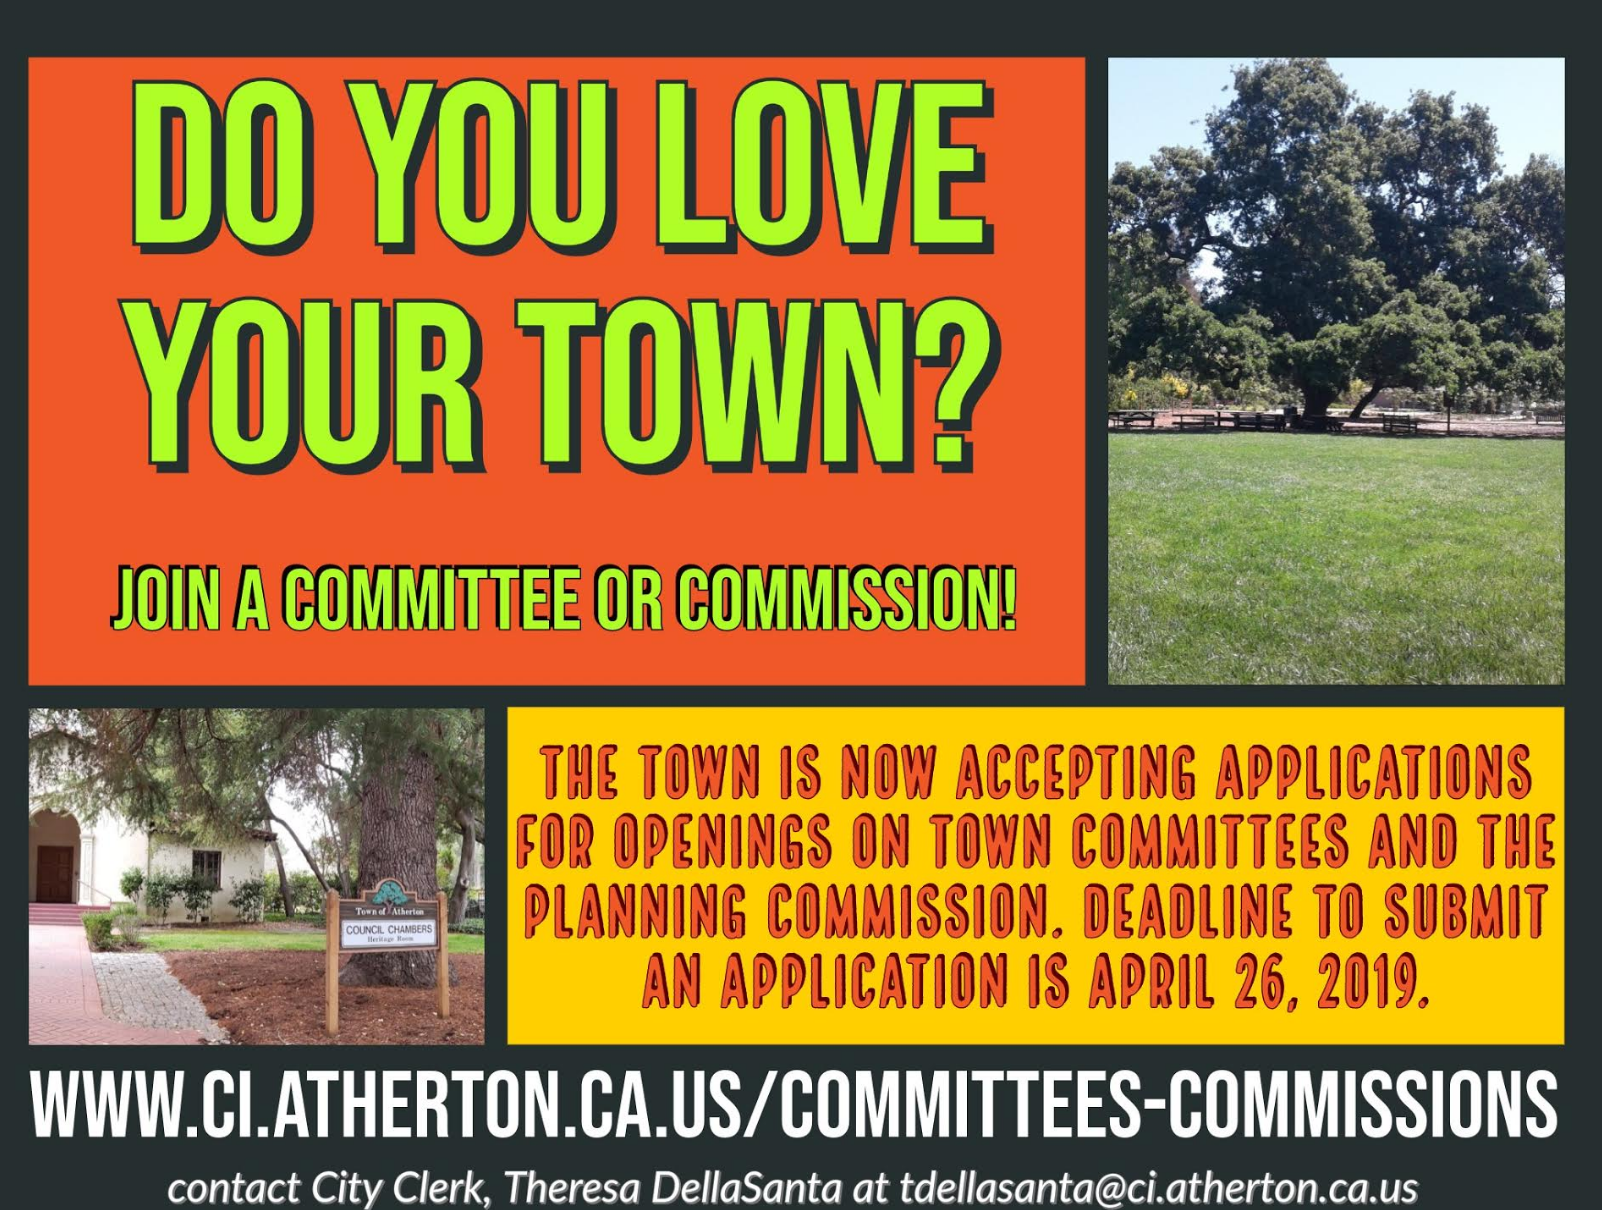 Town Committee and Commission Recruitment Flyer 2019